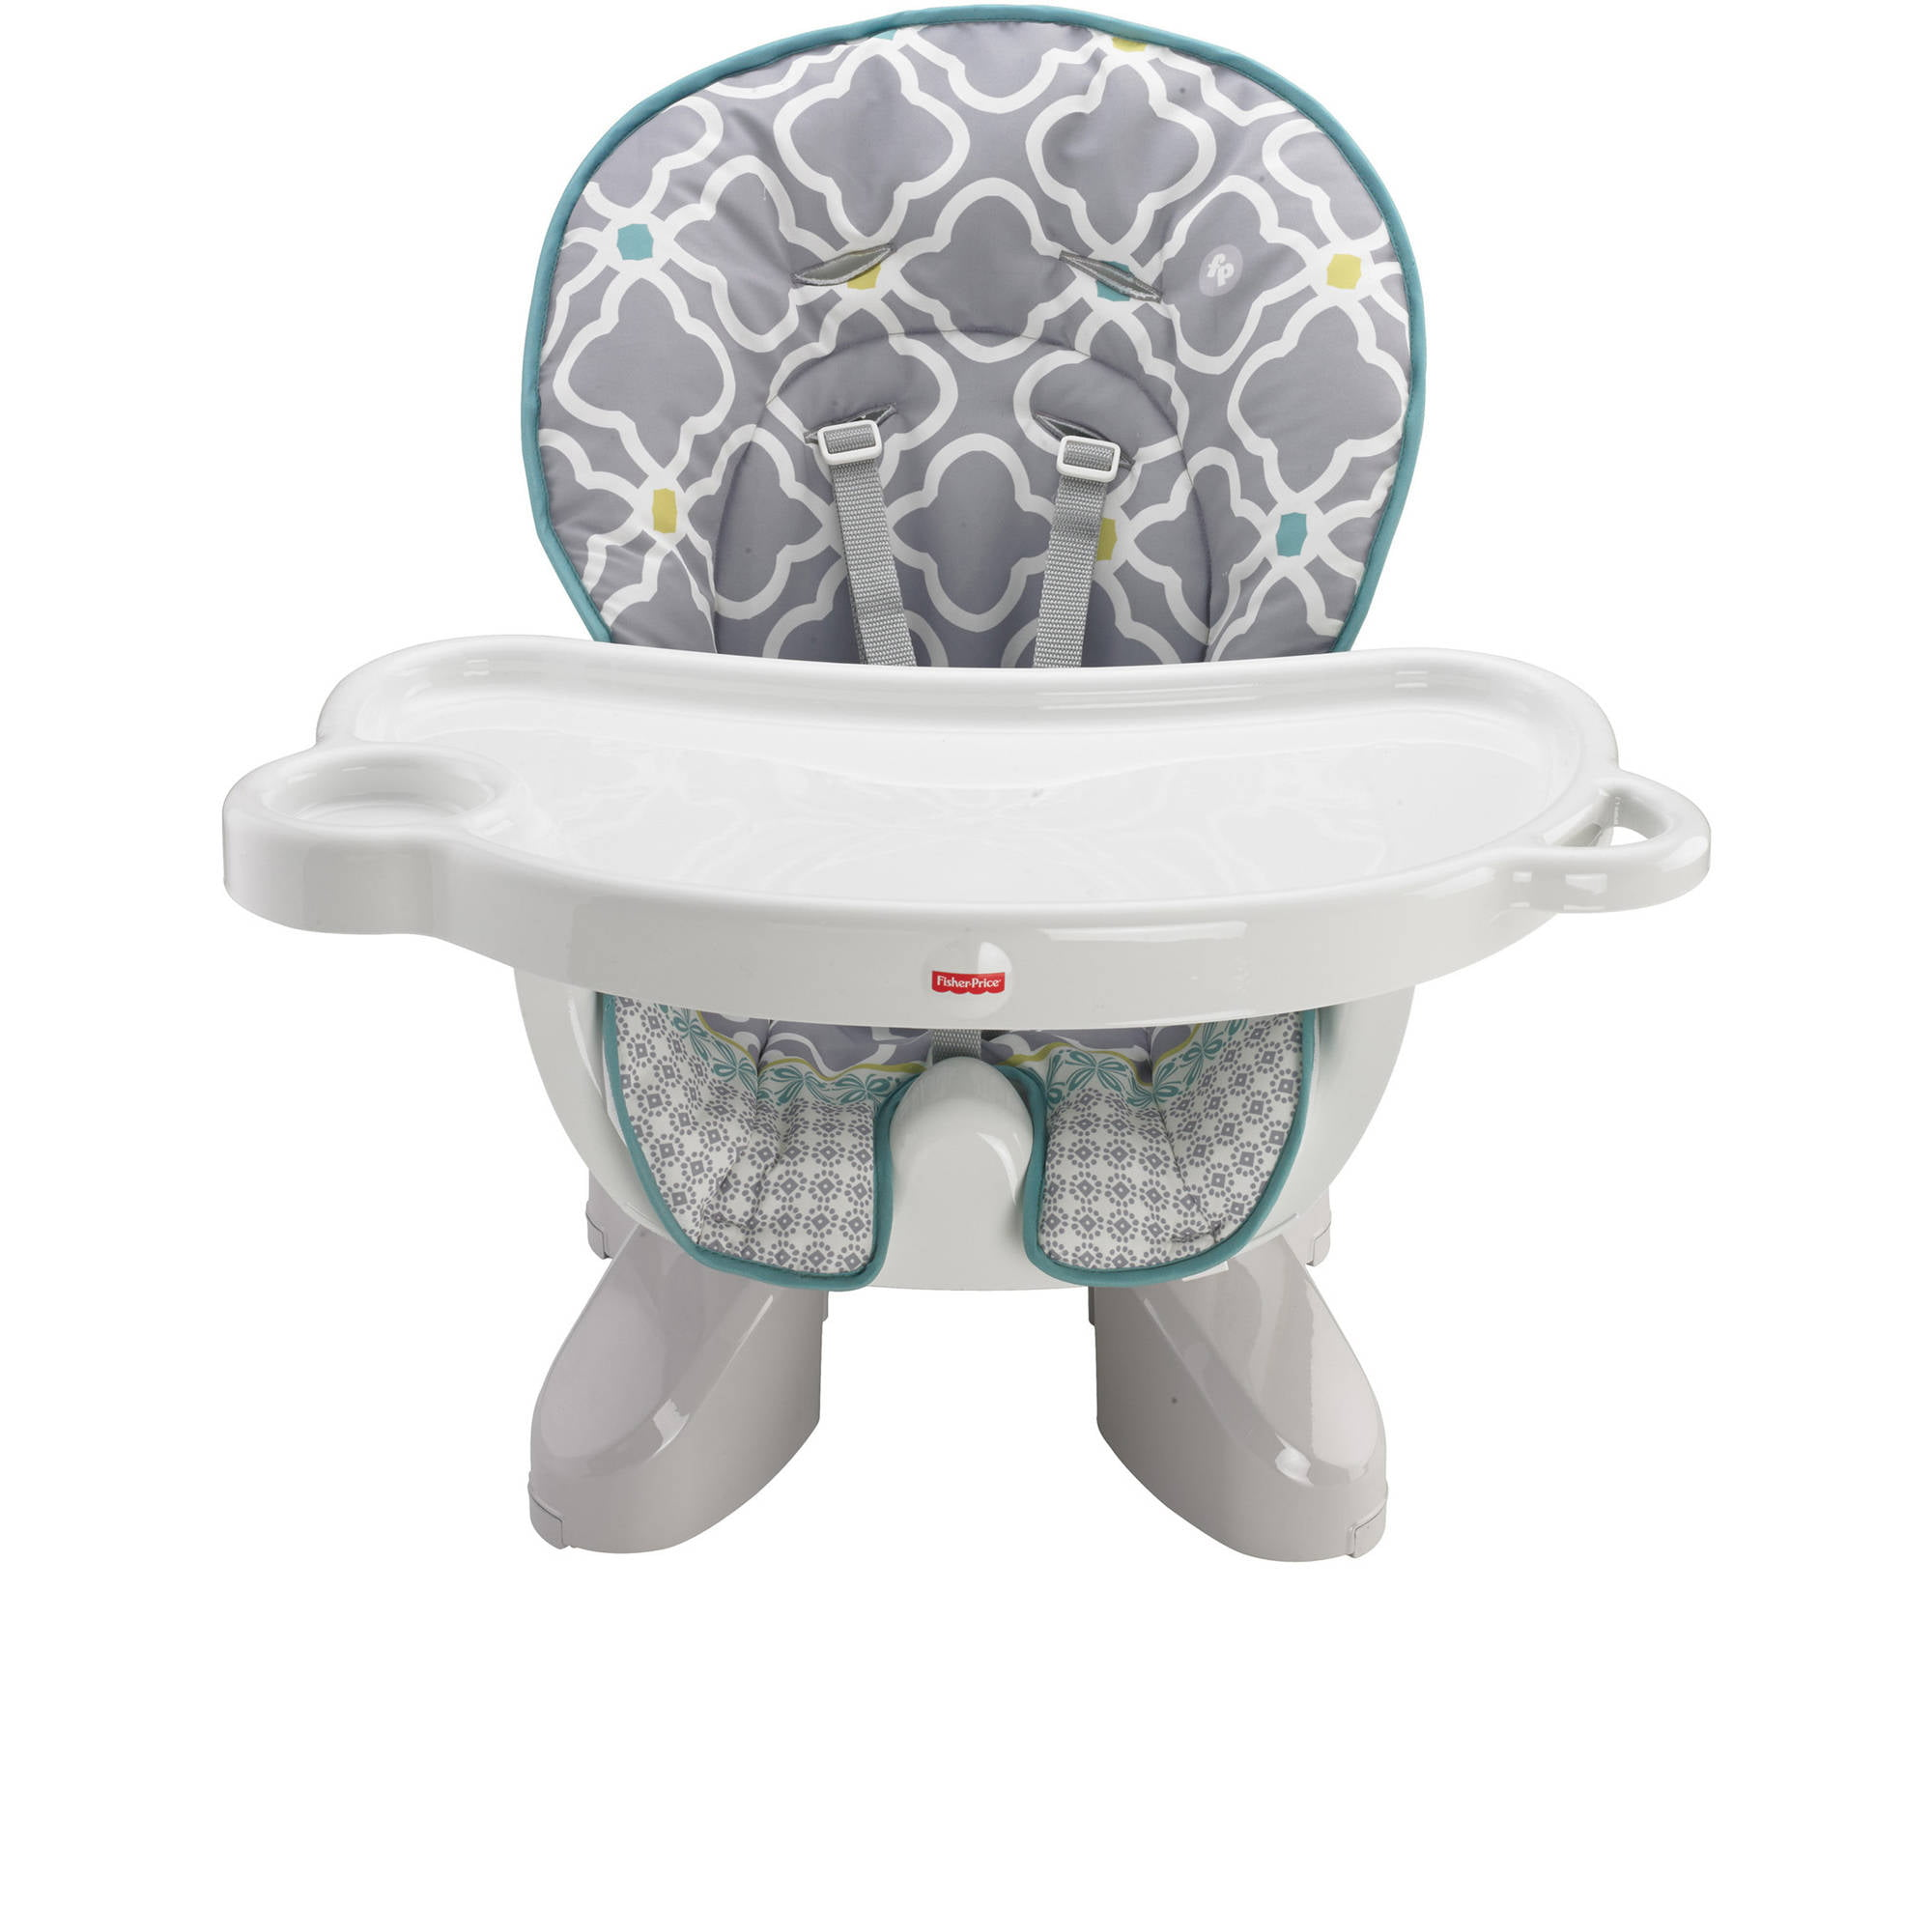 sc 1 st  Walmart & Fisher-Price SpaceSaver High Chair Morning Fog - Walmart.com